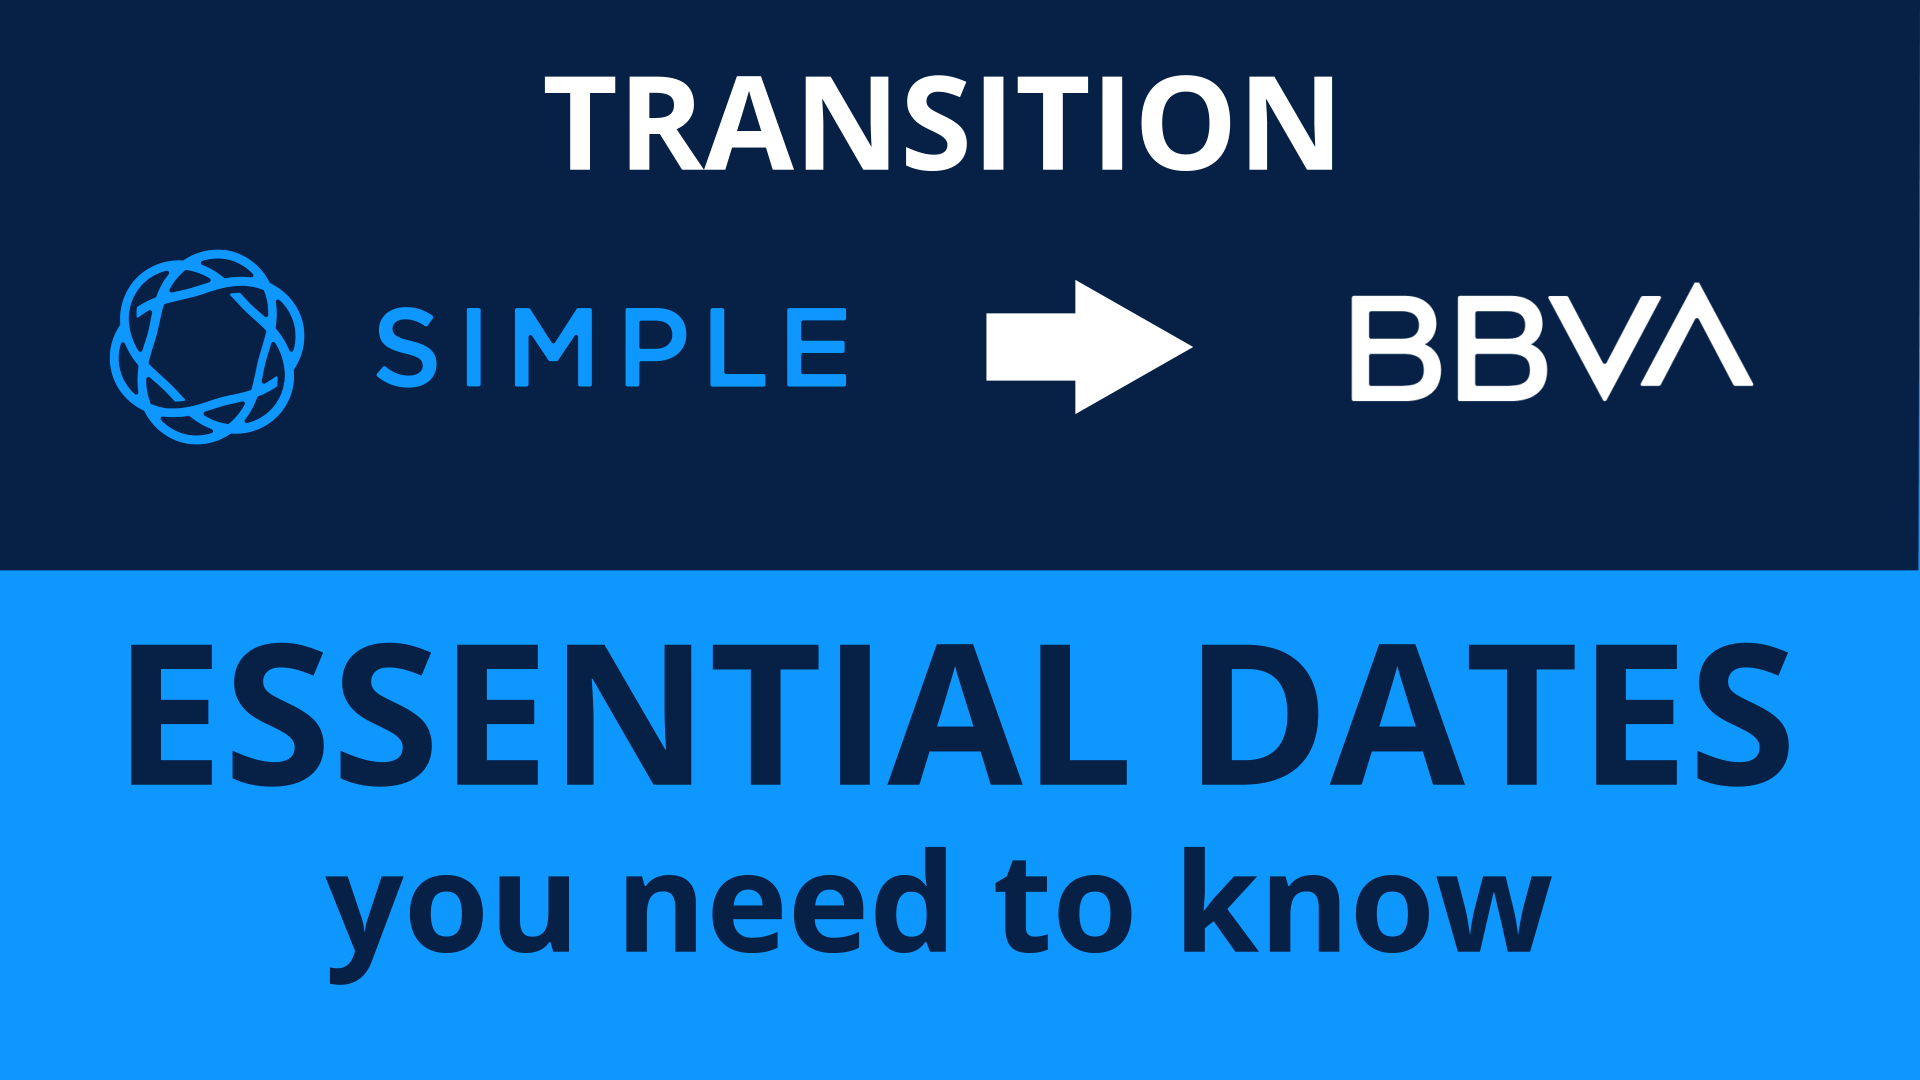 Simple Bank to BBVA USA - Essential dates you need to know